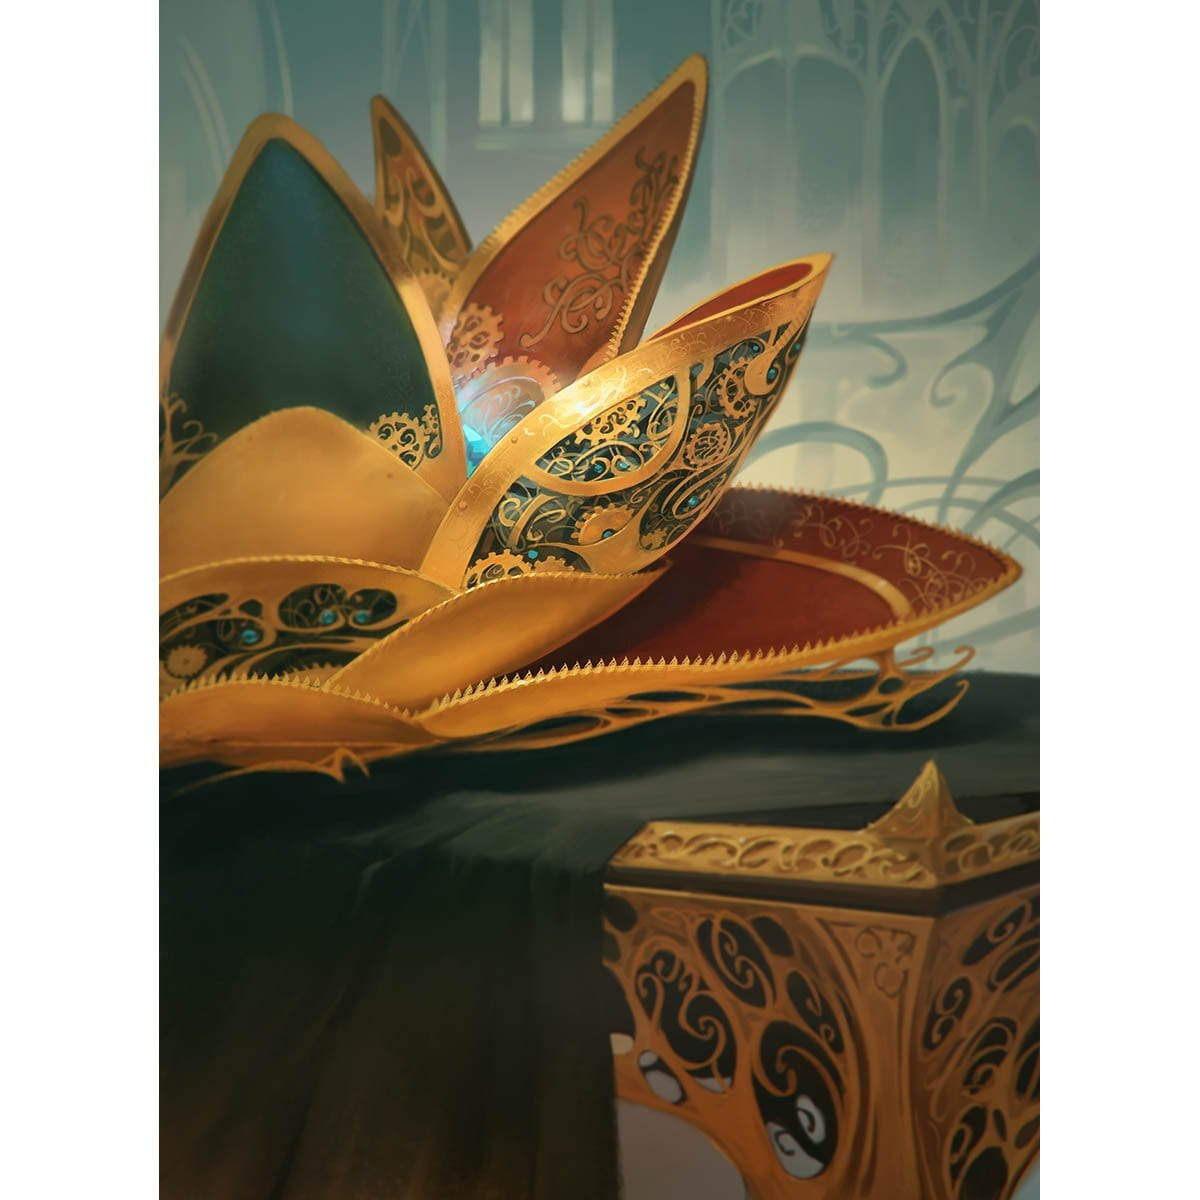 Lotus Petal Print - Print - Original Magic Art - Accessories for Magic the Gathering and other card games